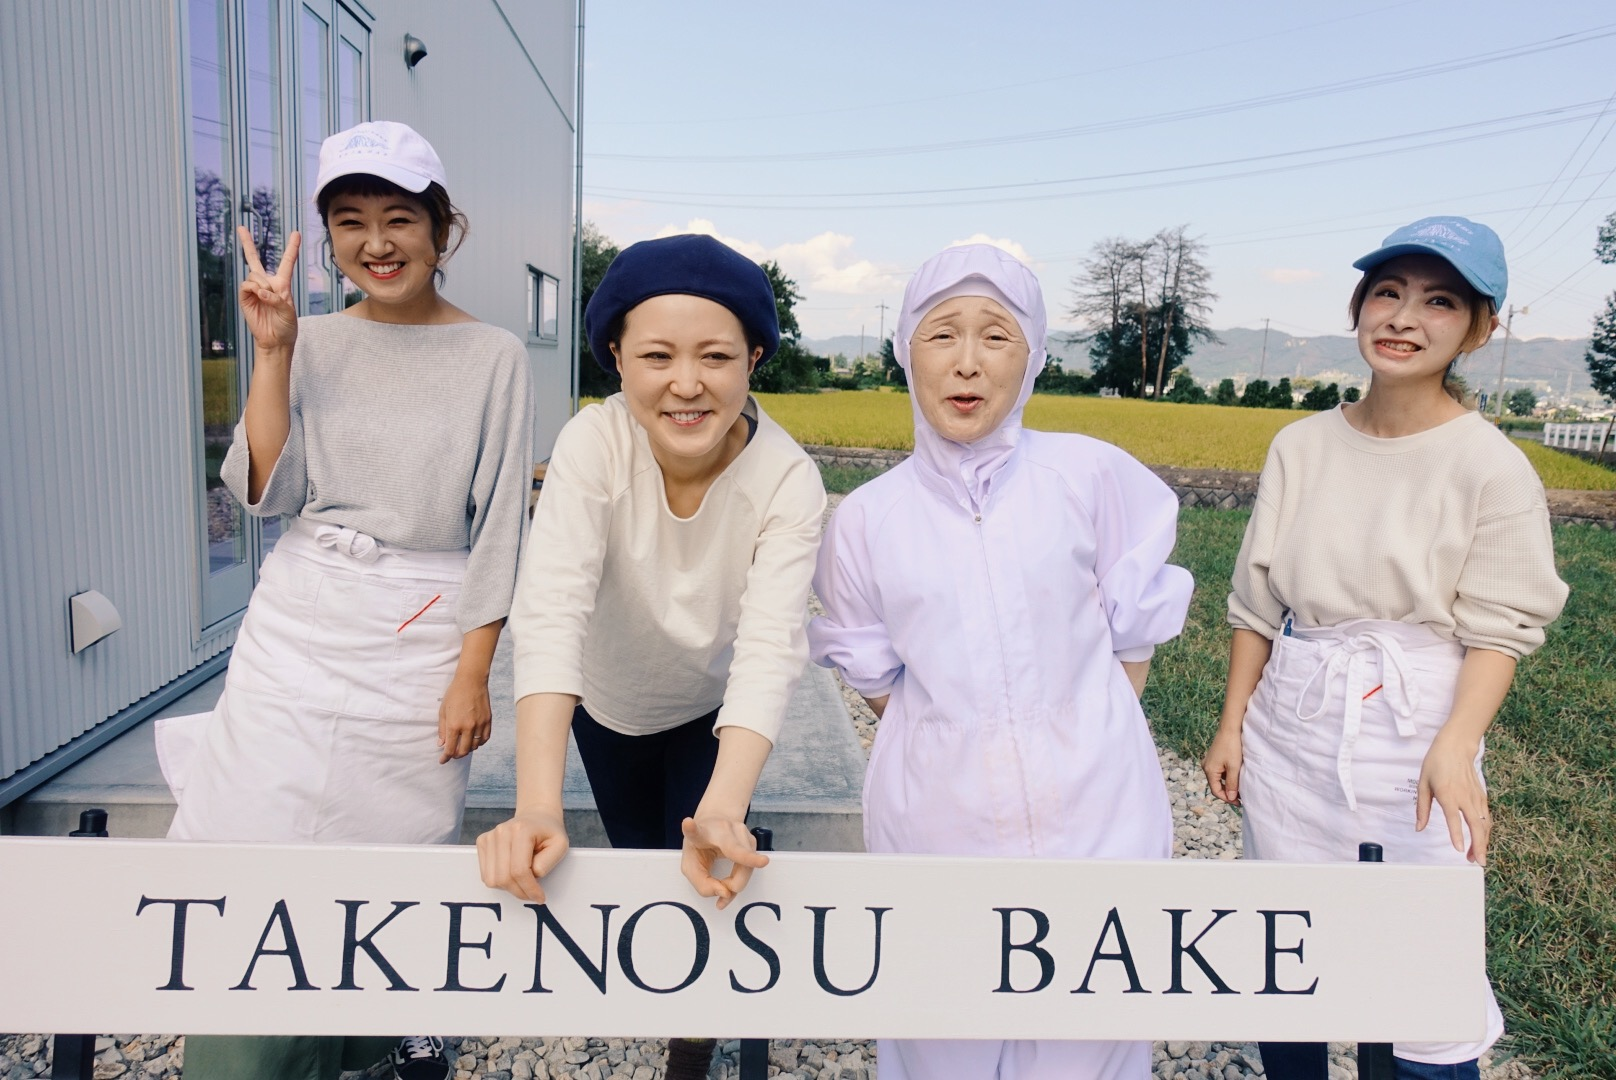 TAKENOSU BAKE